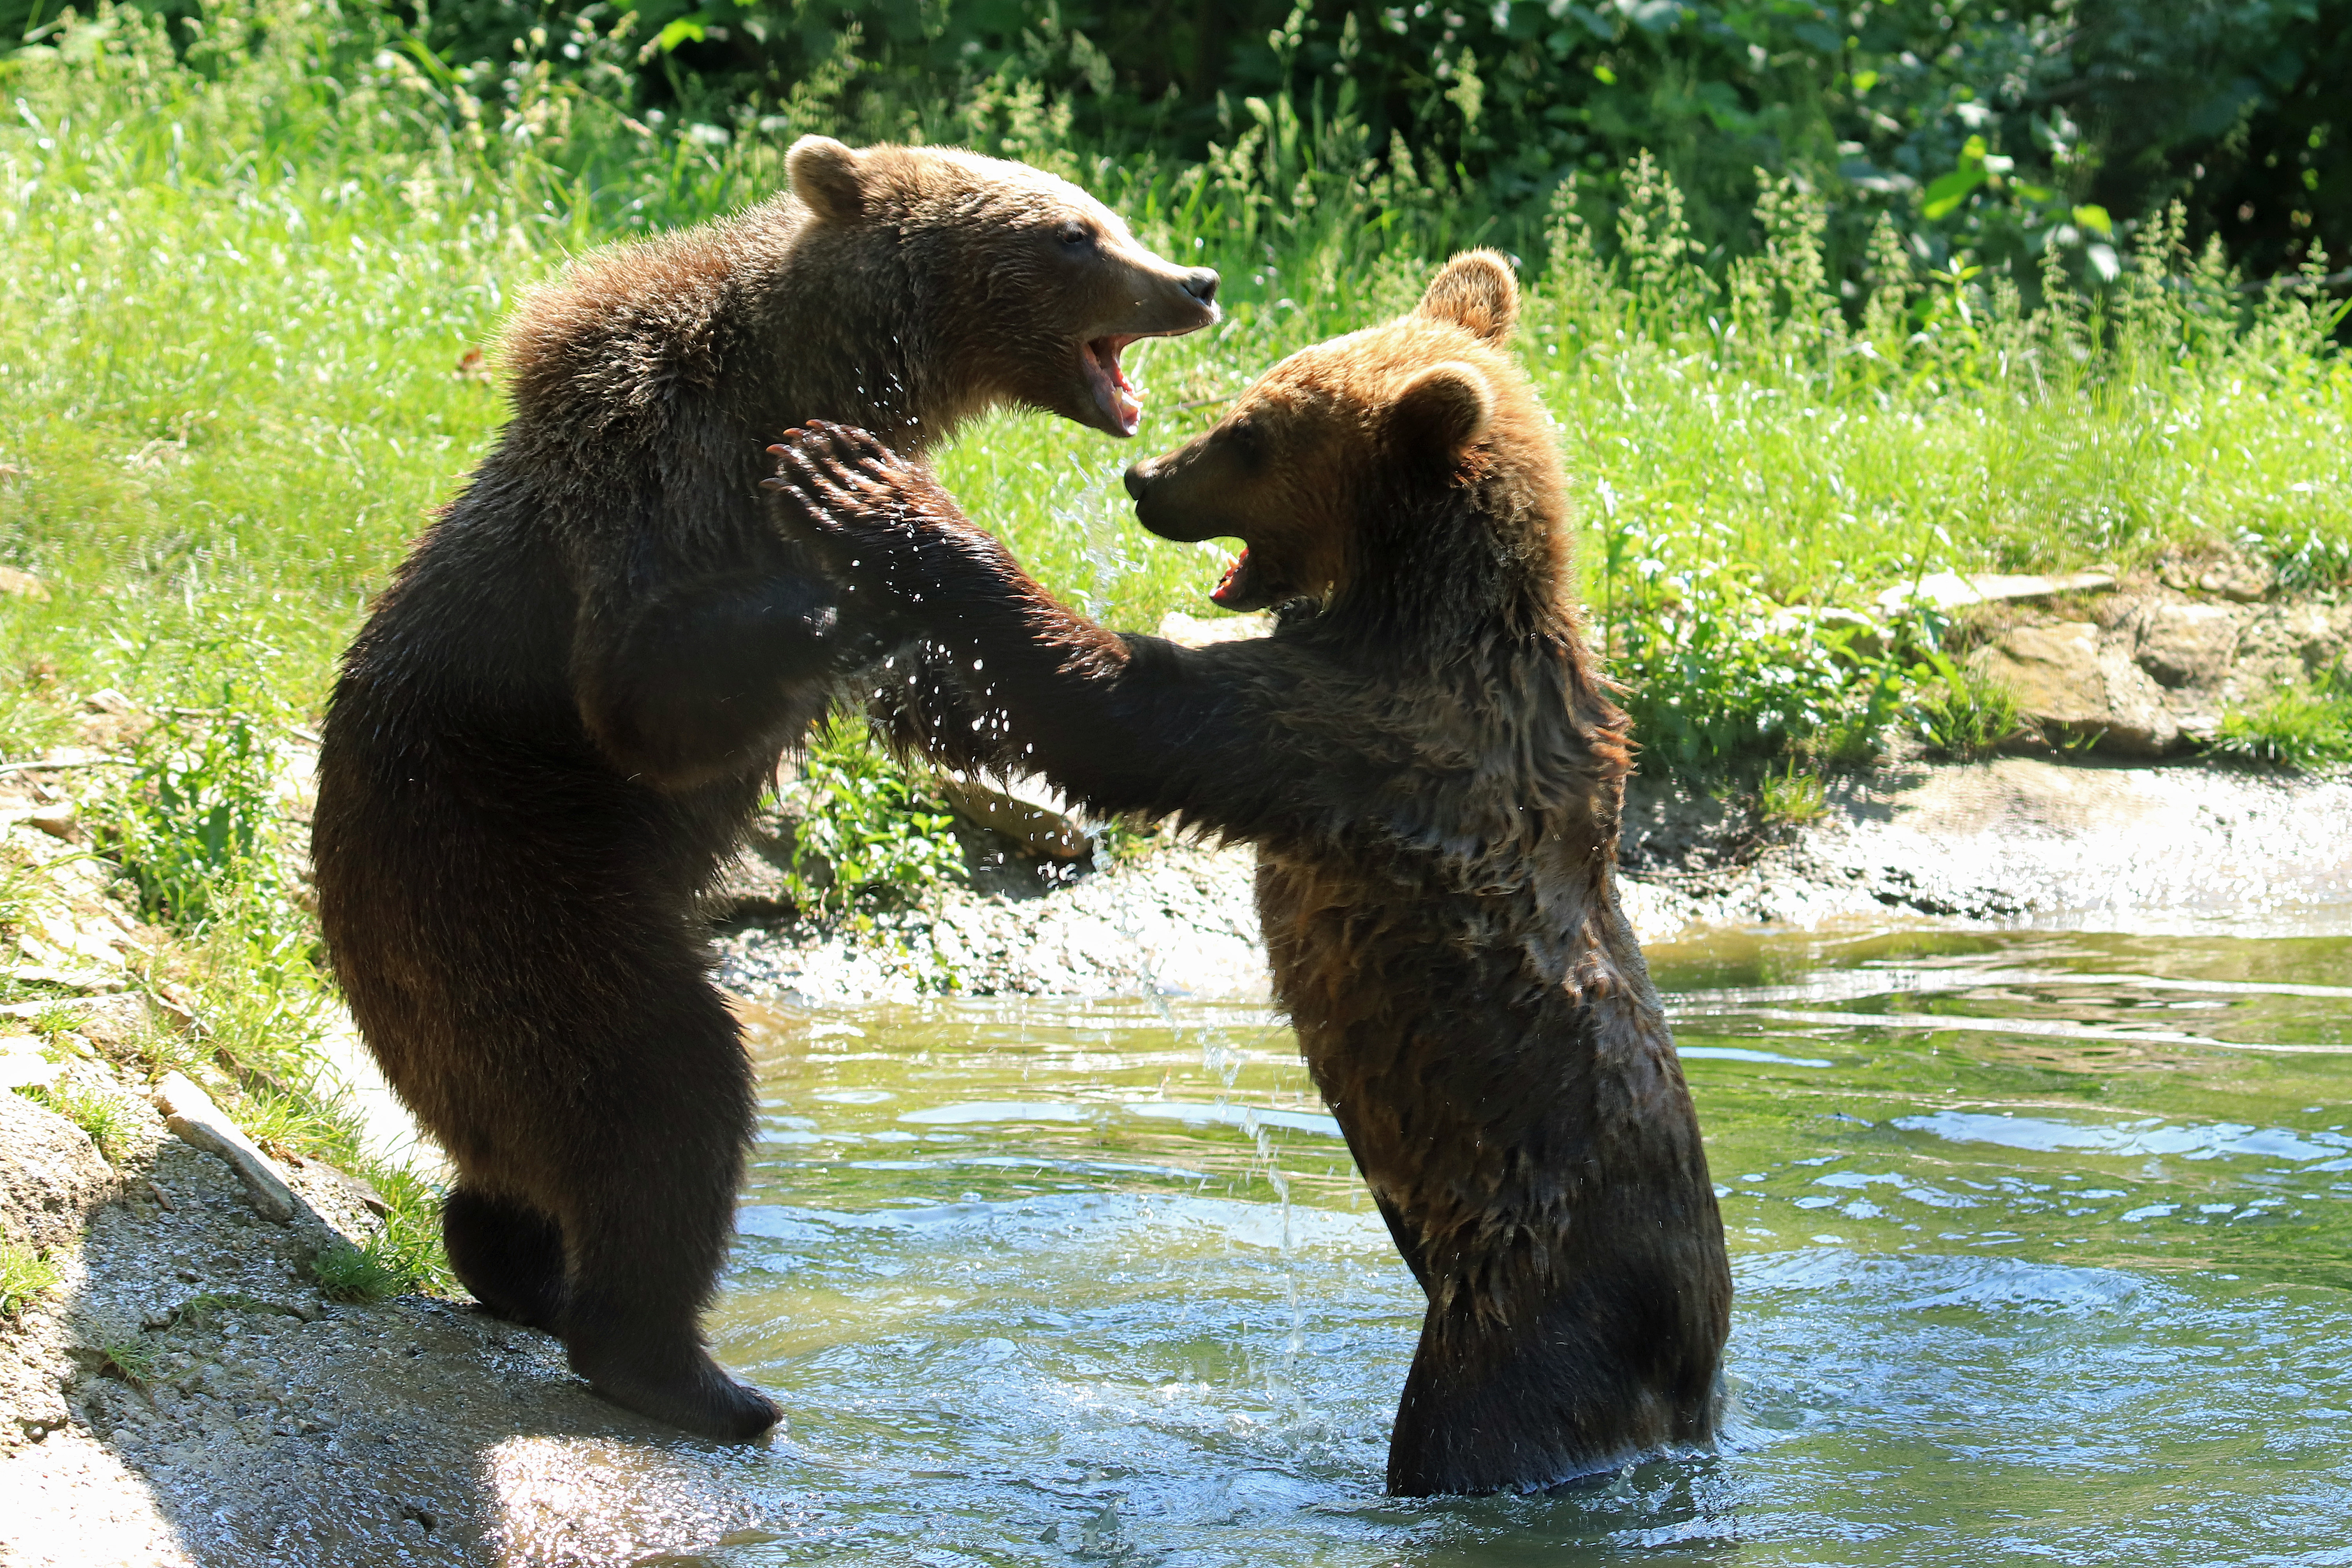 The Rescued Bears of Libearty Bear Sanctuary